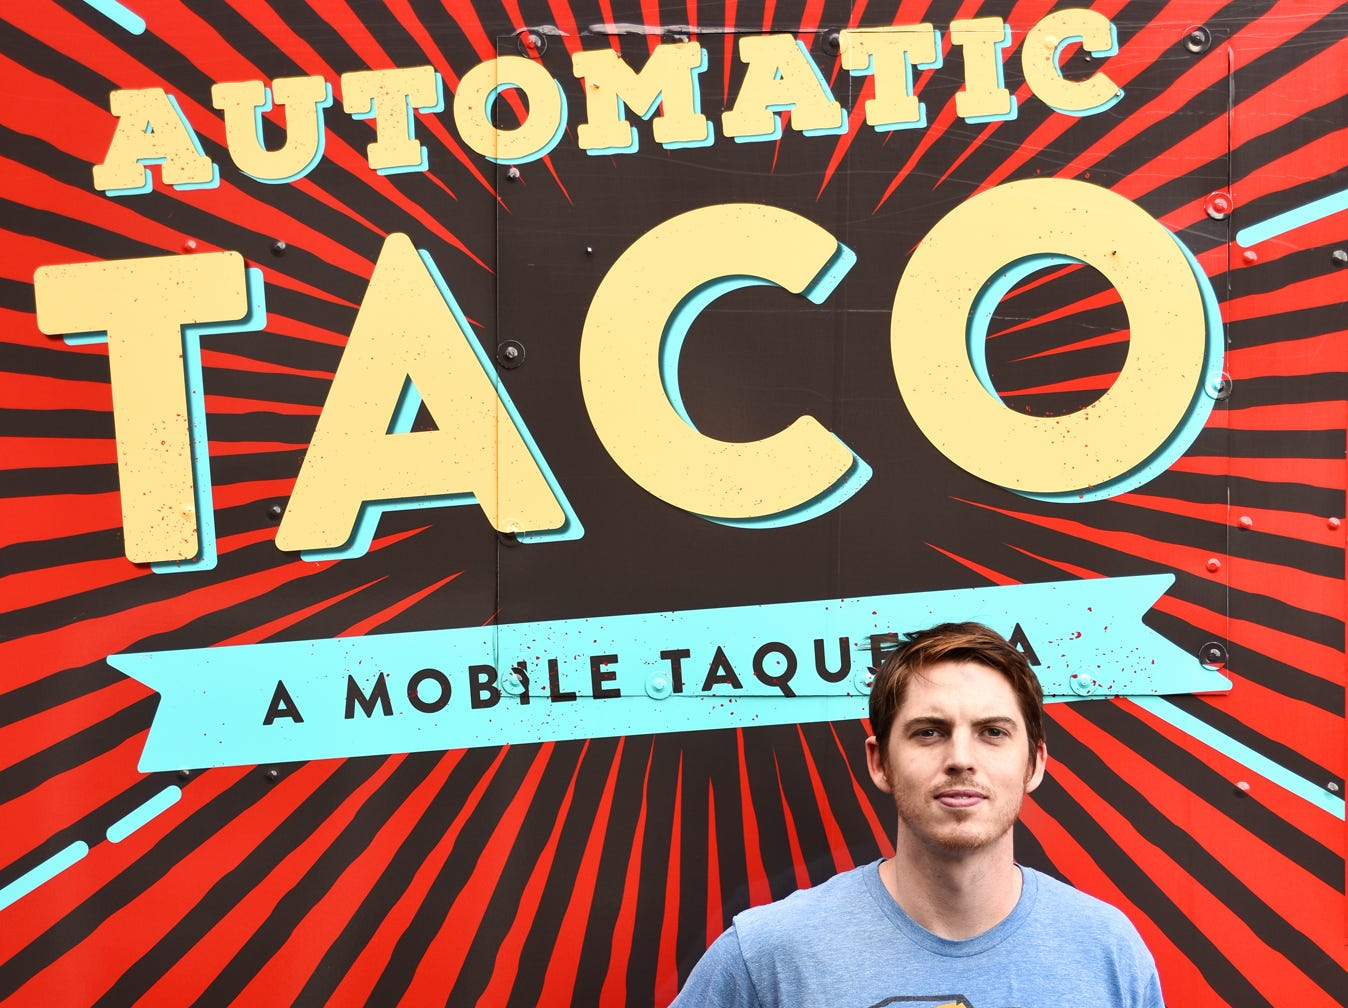 Nick Thomas, owner of Automatic Taco, stands outside of the food truck where he operate his business.